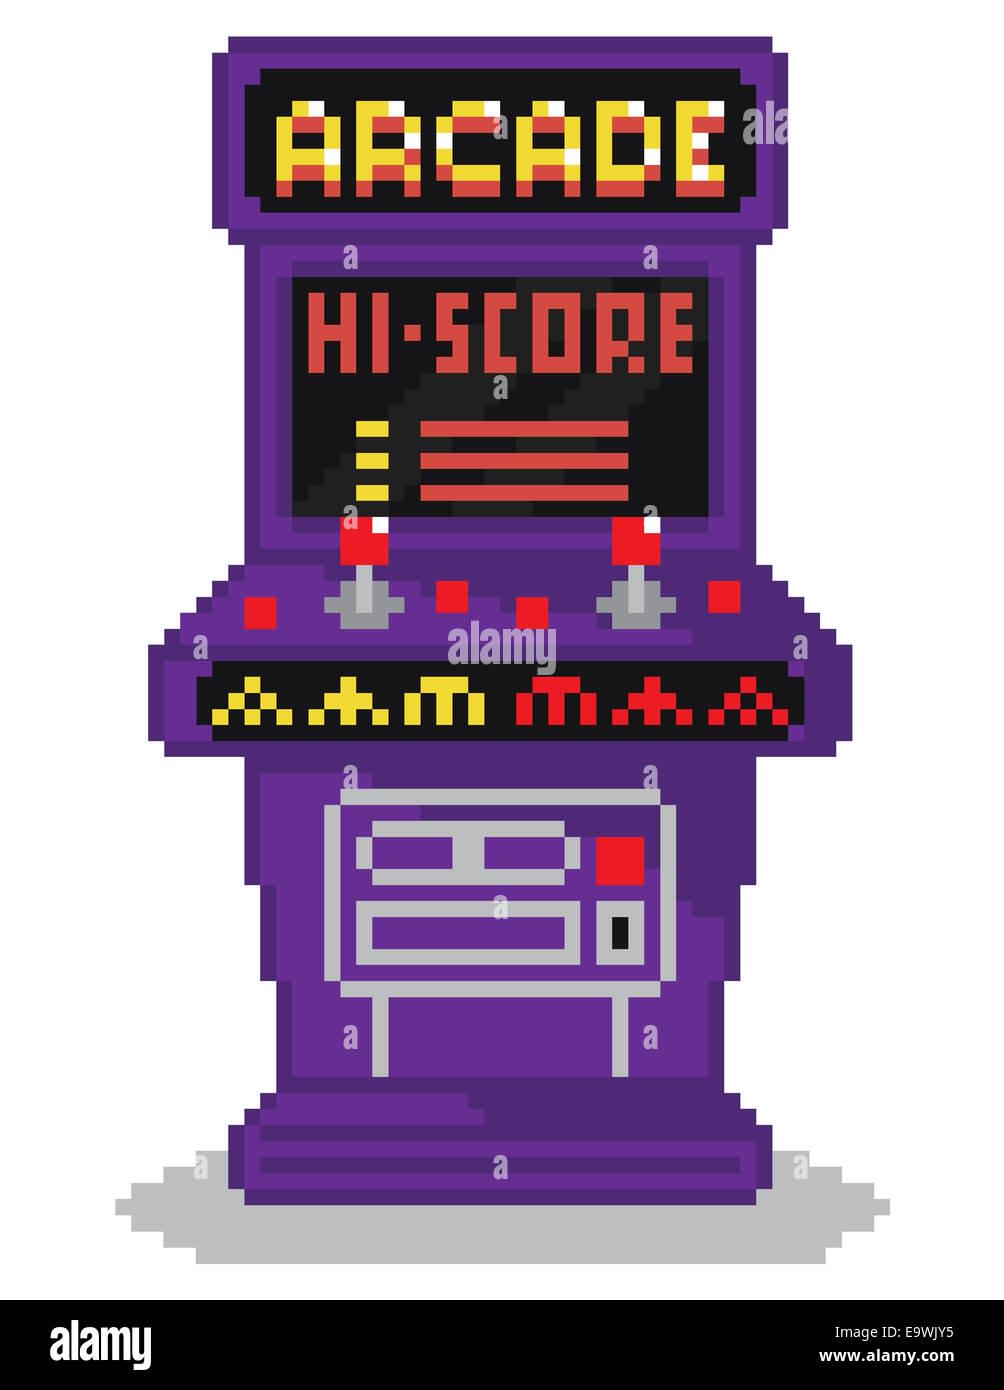 Vintage Arcade Games >> vector illustration - pixel art style drawing of arcade cabinet Stock Photo: 74937049 - Alamy